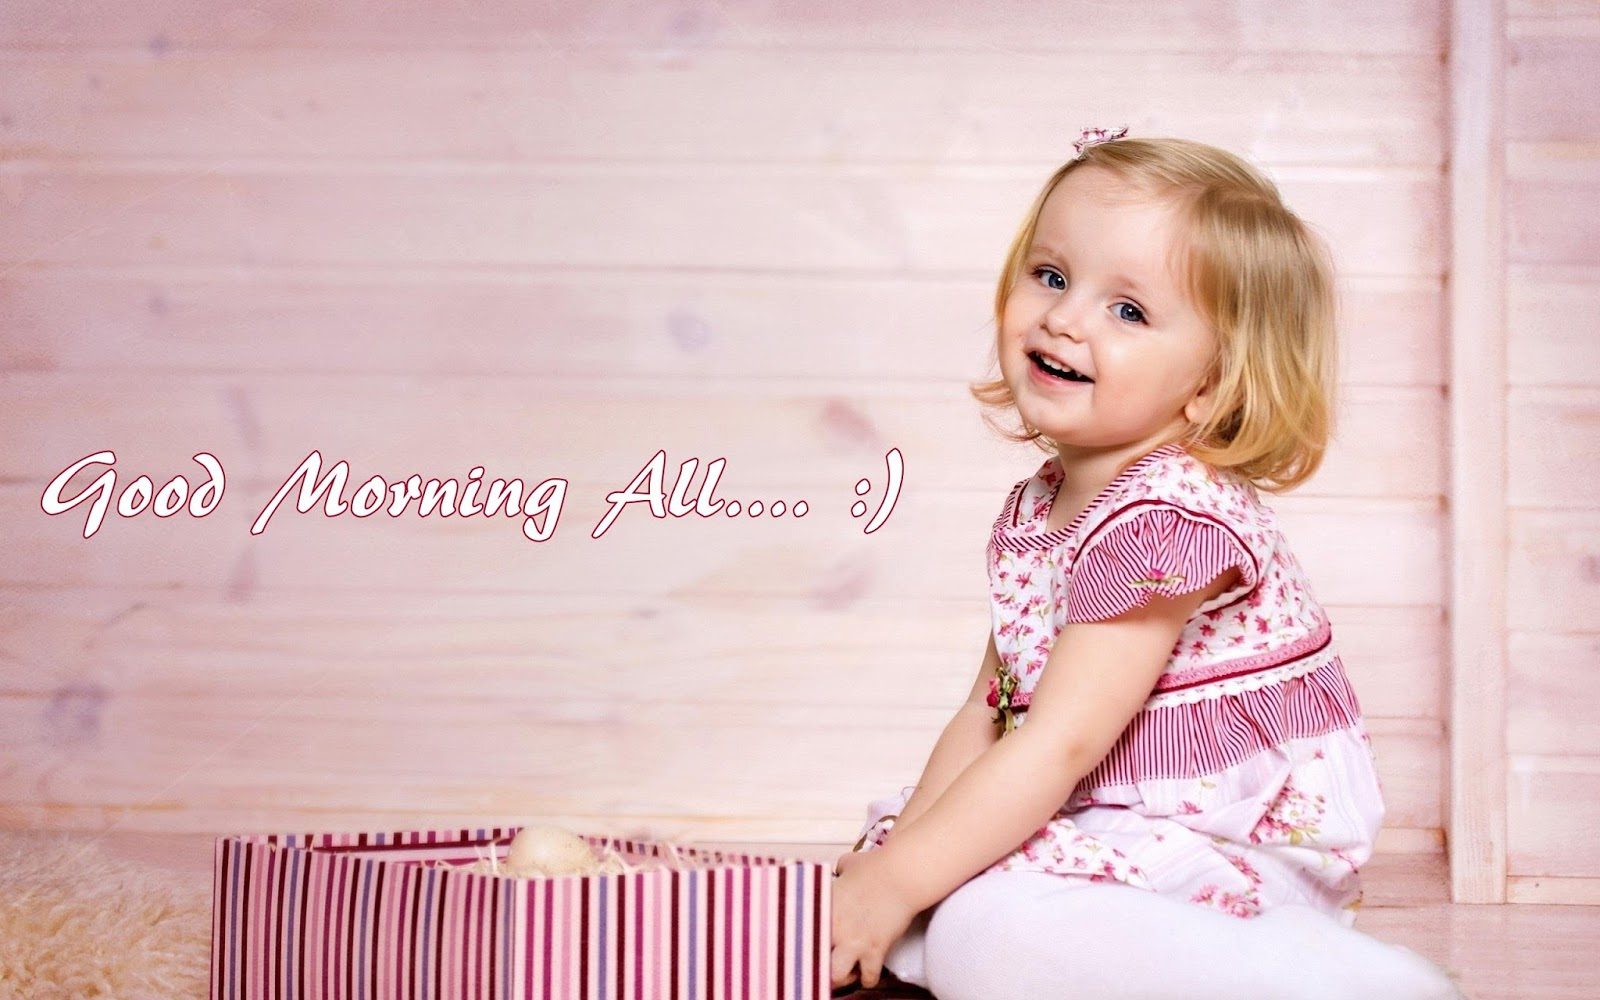 Cute-baby-Wishing-Good-Morning-Pictures